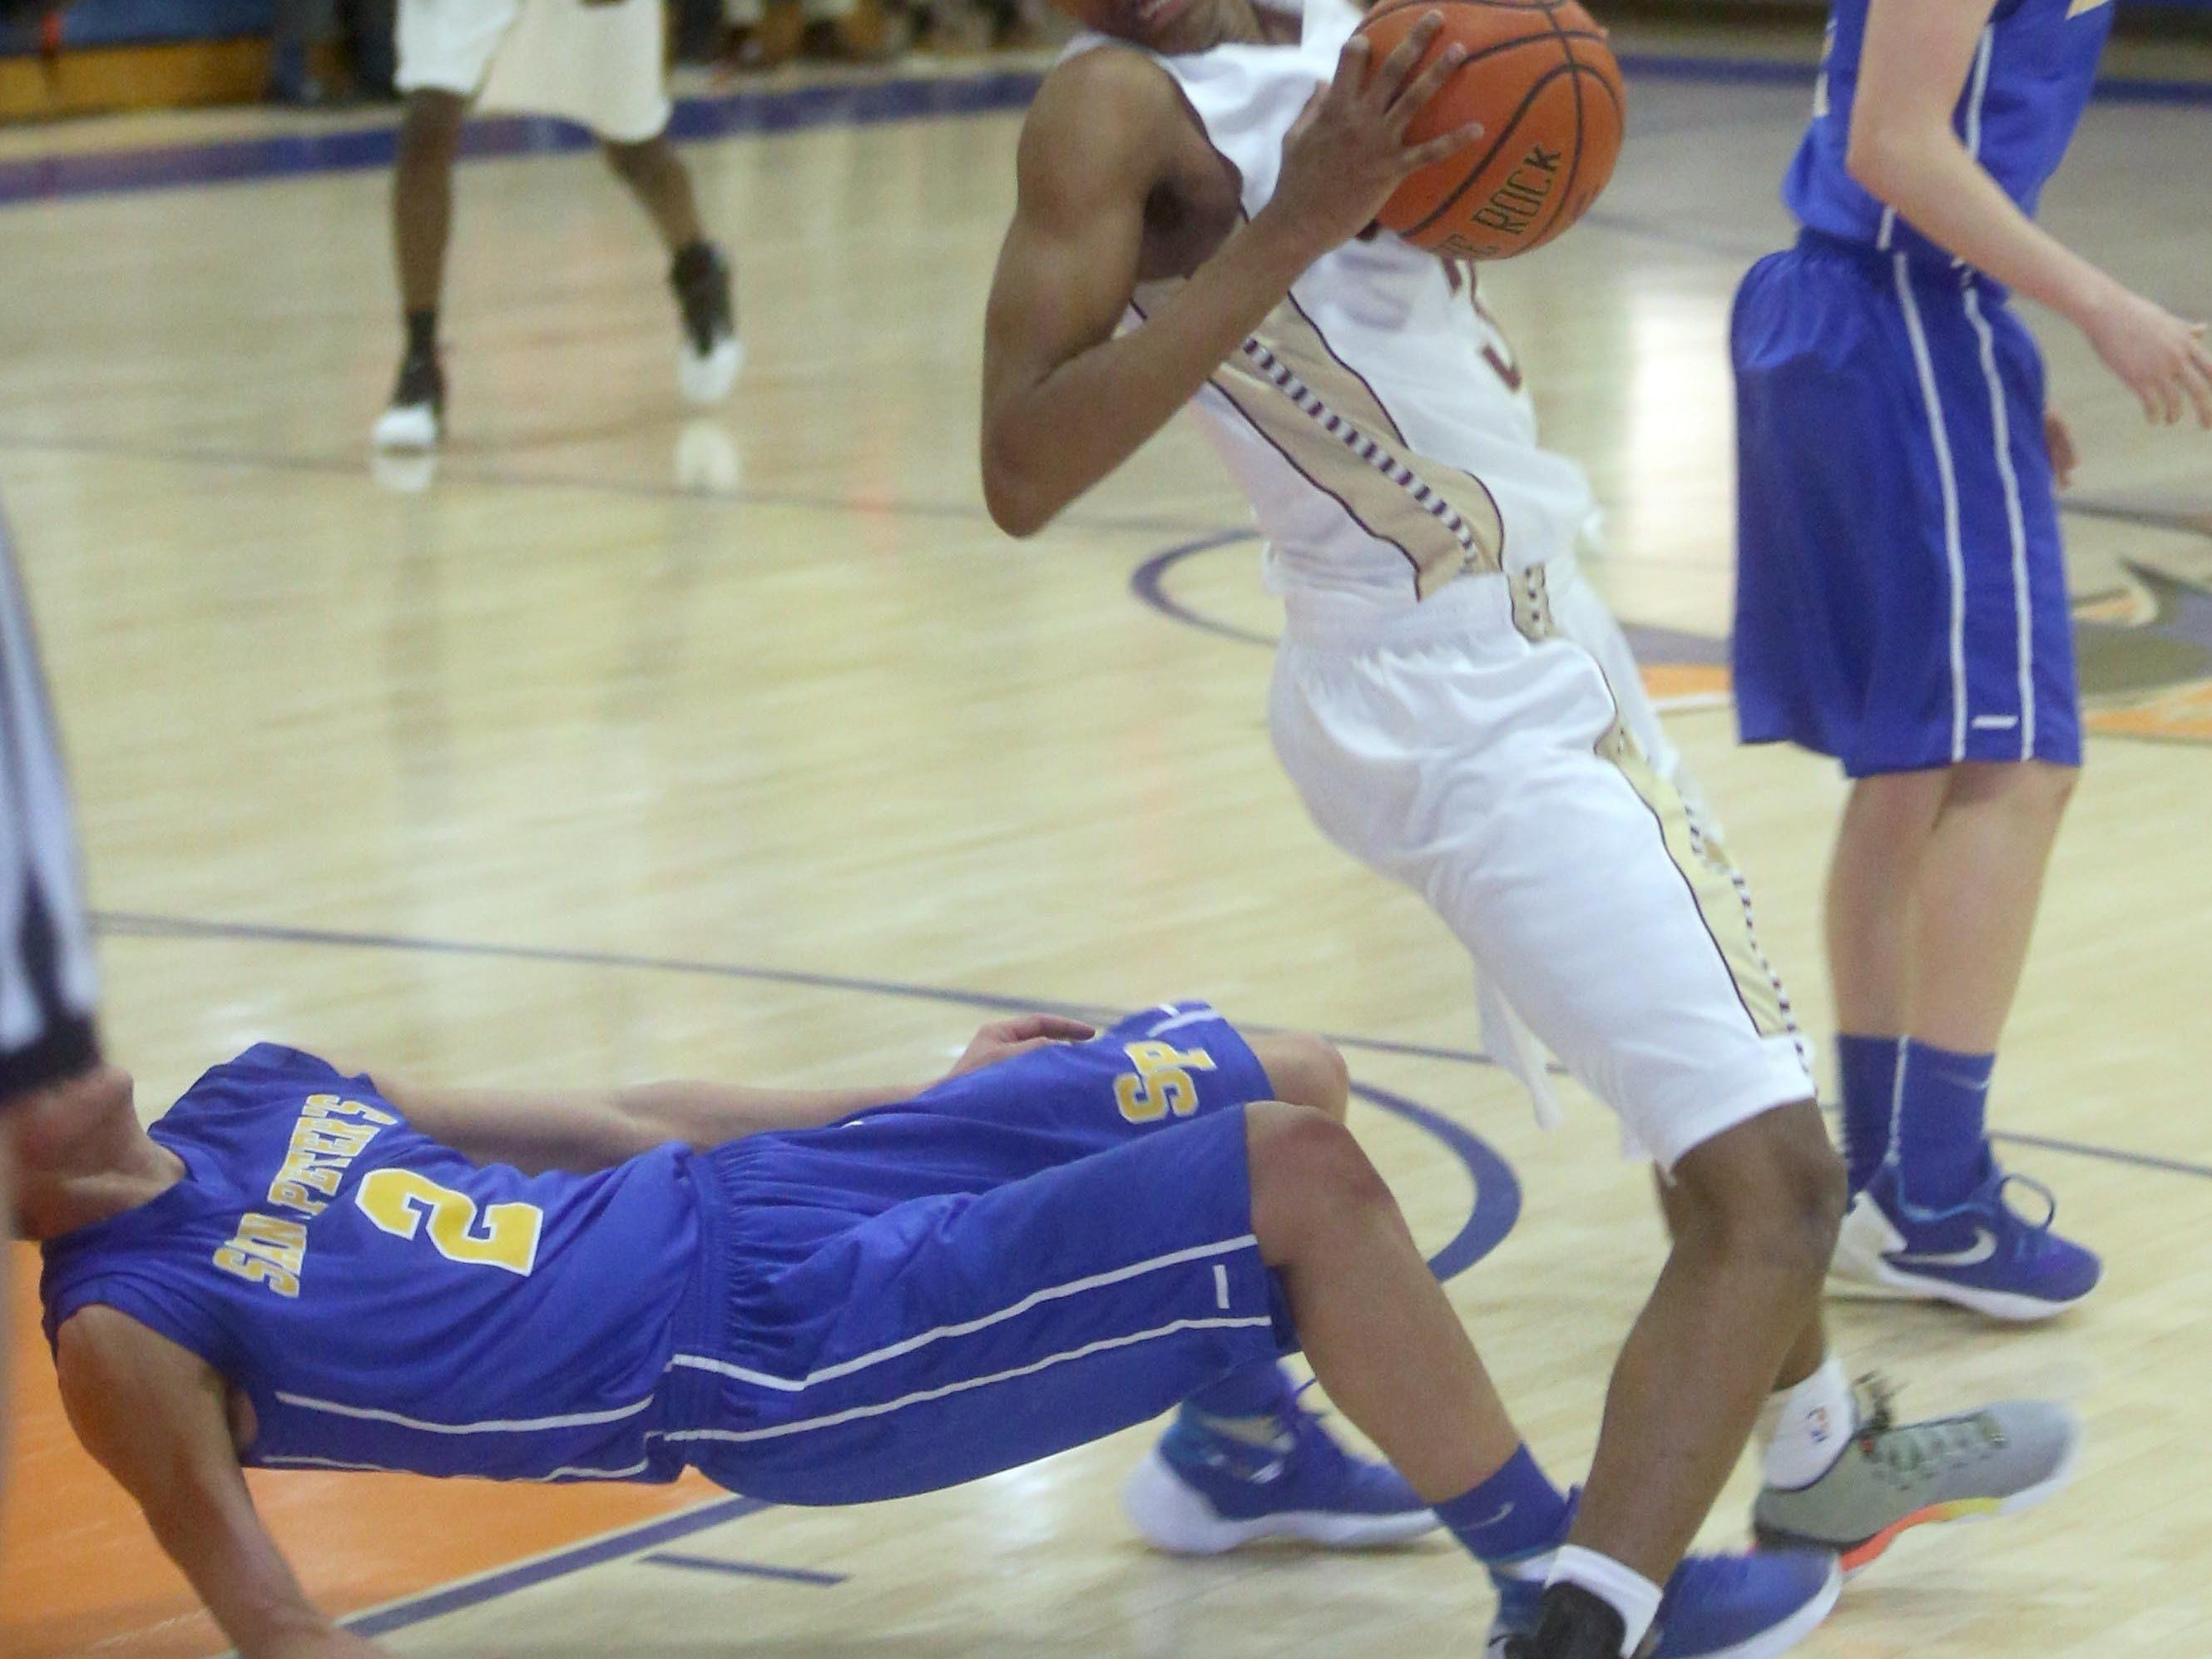 St. Peter's Dylan Walsh goes down while defending Iona Prep's Bryce Wills during a CHSAA second round AA playoff basketball game against St. Peter's at St. Raymond High School in the Bronx March 3, 2016. Iona Prep defeated St. Peter's 51-43.